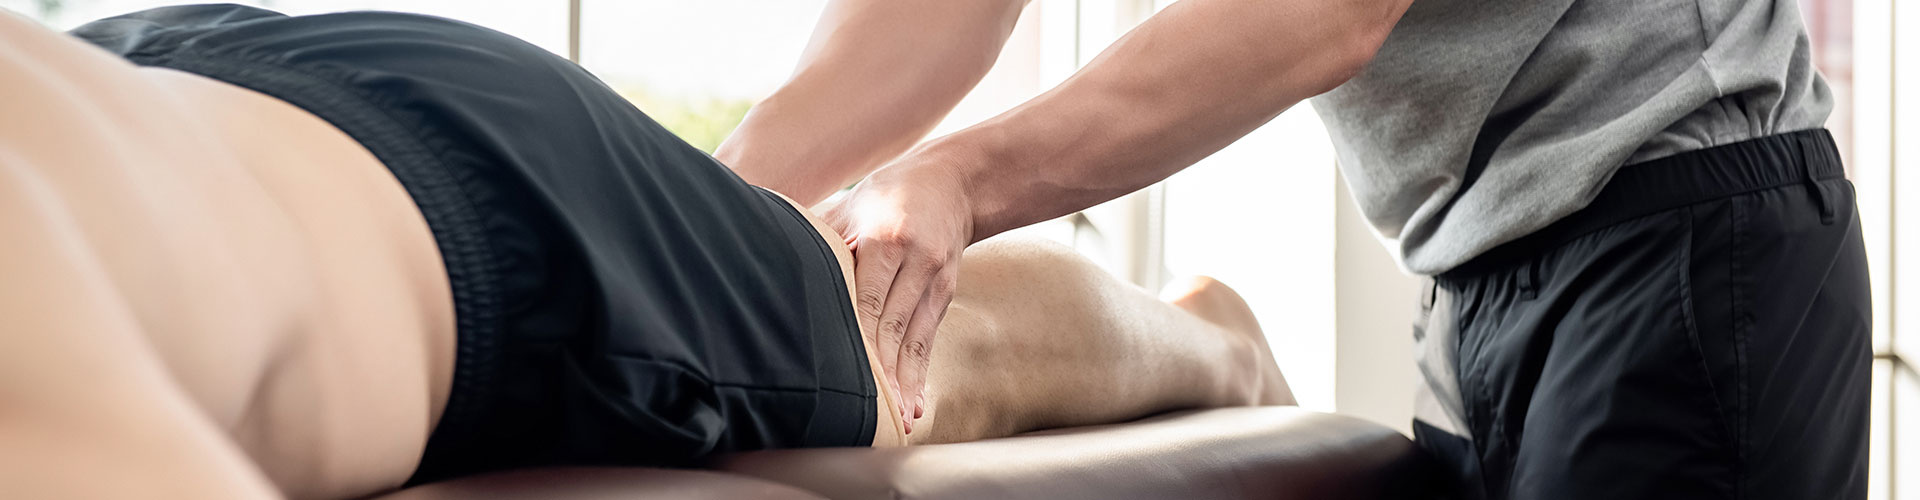 Benefits of a Swedish massage here in London